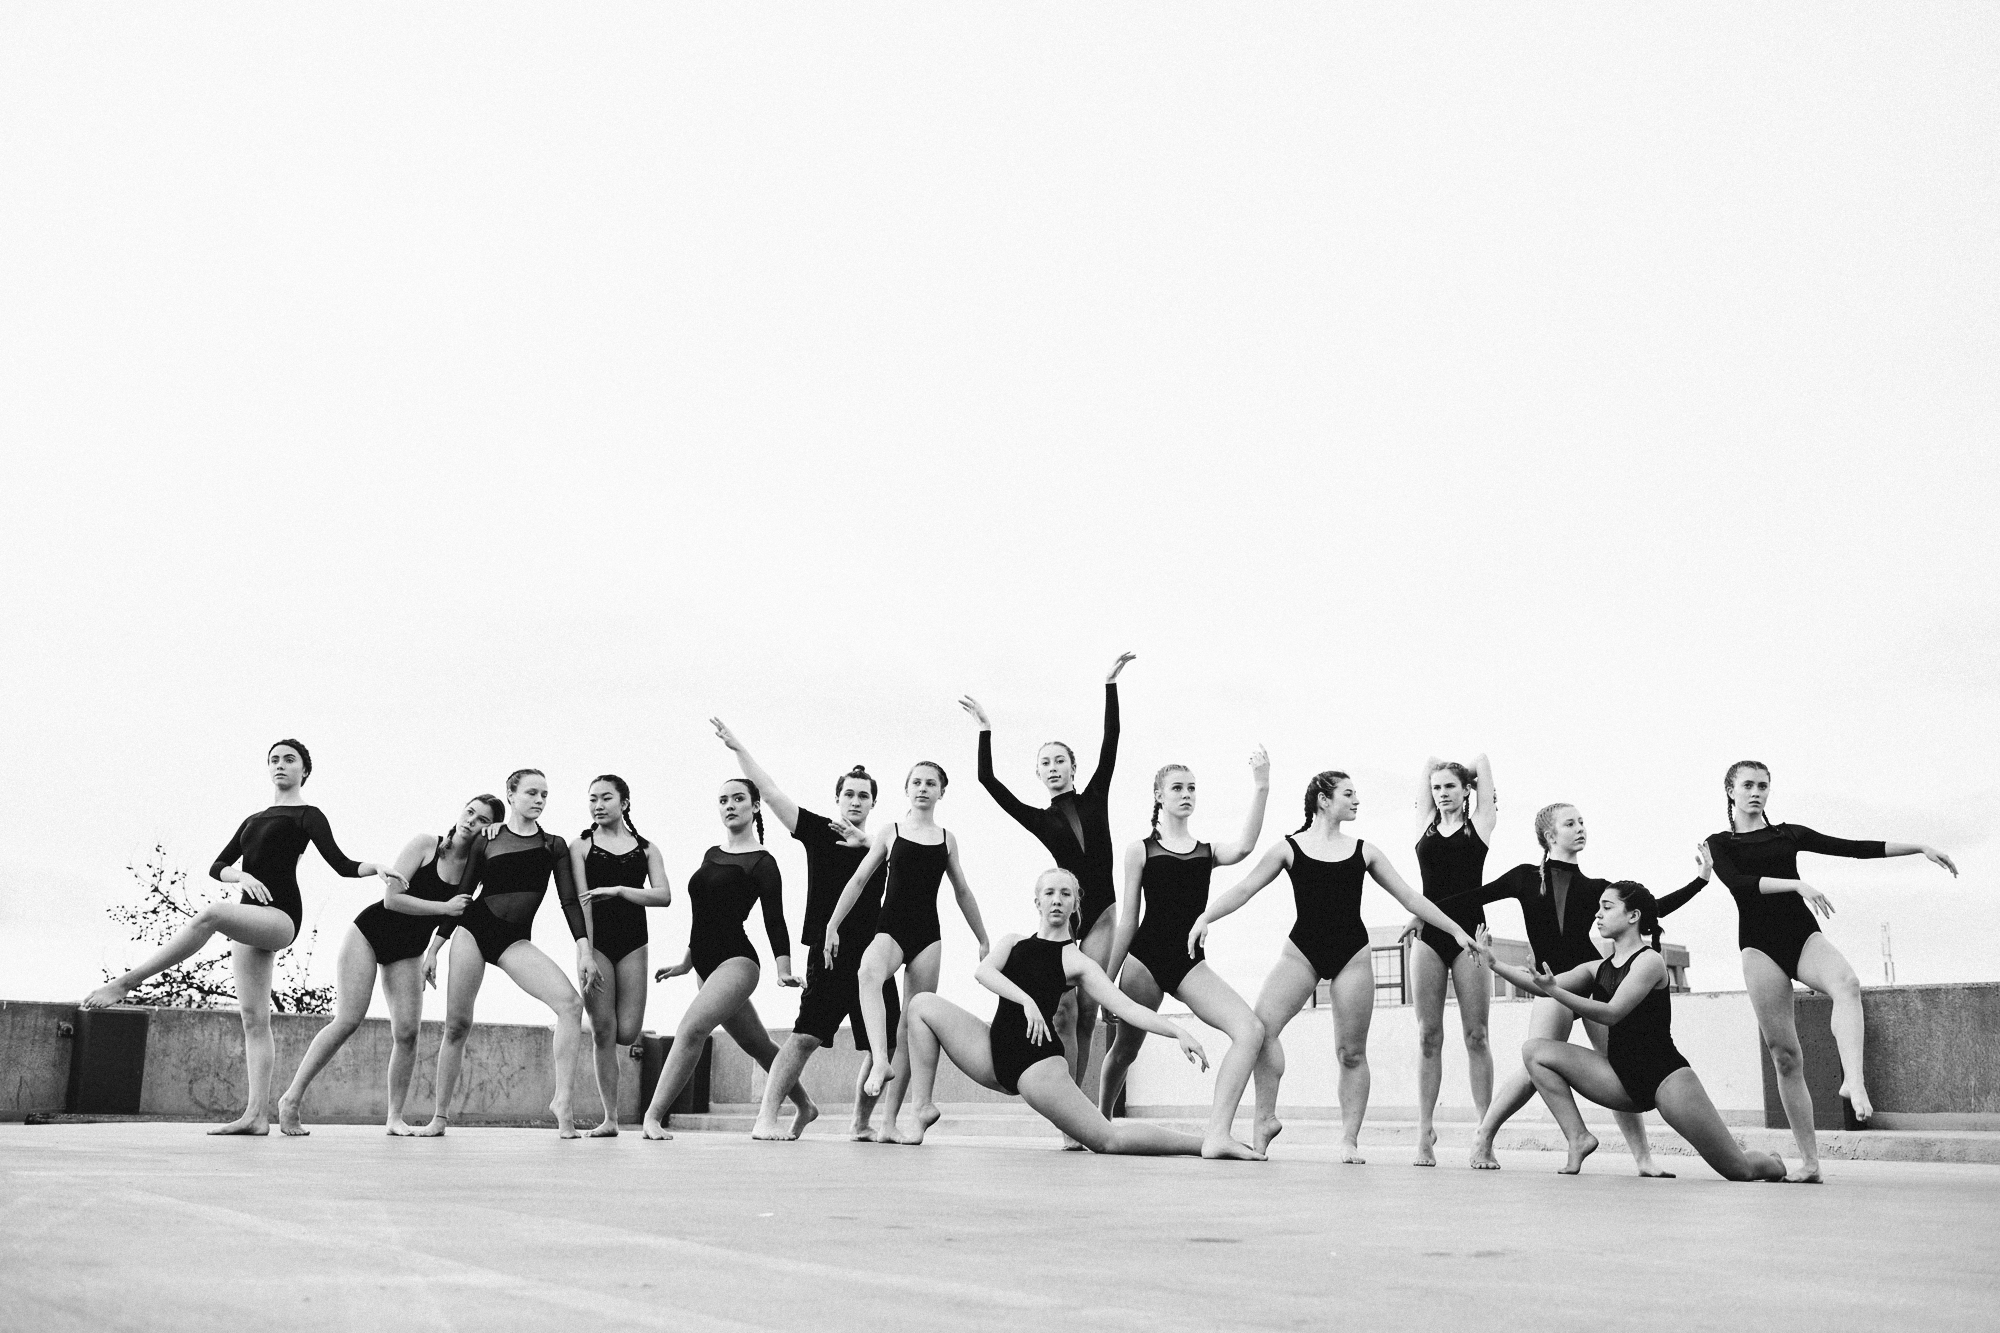 Competition Group Ballet - Photo Credit: Jay EadsFaculty: Caitlin ChristopherMembers Pictures: Grace Ault-Hanlon, Sydney Bineham, Devyn Boonstra, Autumn Dechter, Mayla Garlitz, Sesca Lindh-Nussbaum, Bronwyn Lord, Eloise McFarlane, Jessie McCann, Maggie McCann, Ady Walker, Sarah Dione, Lily Hansen, Savannah Lash, Allyssa Mini, Hanna Pavulans-Sherwood, Devan Strandburg, Sophie Raiskin Wood, Anna Philan, Gabriel Warren.This 60 min. ballet class is mandatory for all flex Studios competition group members. As one of flex Studios most advanced placement classes auditions and 4 years of previous training is required.Competition Group Ballet maintains an emphasis on proper vocabulary, body placement, technique, weight distribution, follow through, lines and facility. Attention is paid to the proper extension of the legs and shape of the feet, developing movement sequences, port de bras and balance. In addition, use of the head and upper body, fluidity of port de bras, and intricacies of petite and grand jumps will be covered. This class is paired as the precursor and warm up to the competition group choreography 90min class.Uniform RequirementsStaying with the tradition of ballet education and technique a mandatory uniform is required.Hair should be secured in a bun, up and off the face and neck.Dancers identifying as female wear black leotard, pink tights and pink ballet shoes.Dancers identifying as male wear fitted white dance tee shirt, black tights and black ballet shoes.Gender non-conforming or gender-questioning dancers should wear the dress requirements that makes them feel most comfortable.All body types welcome.